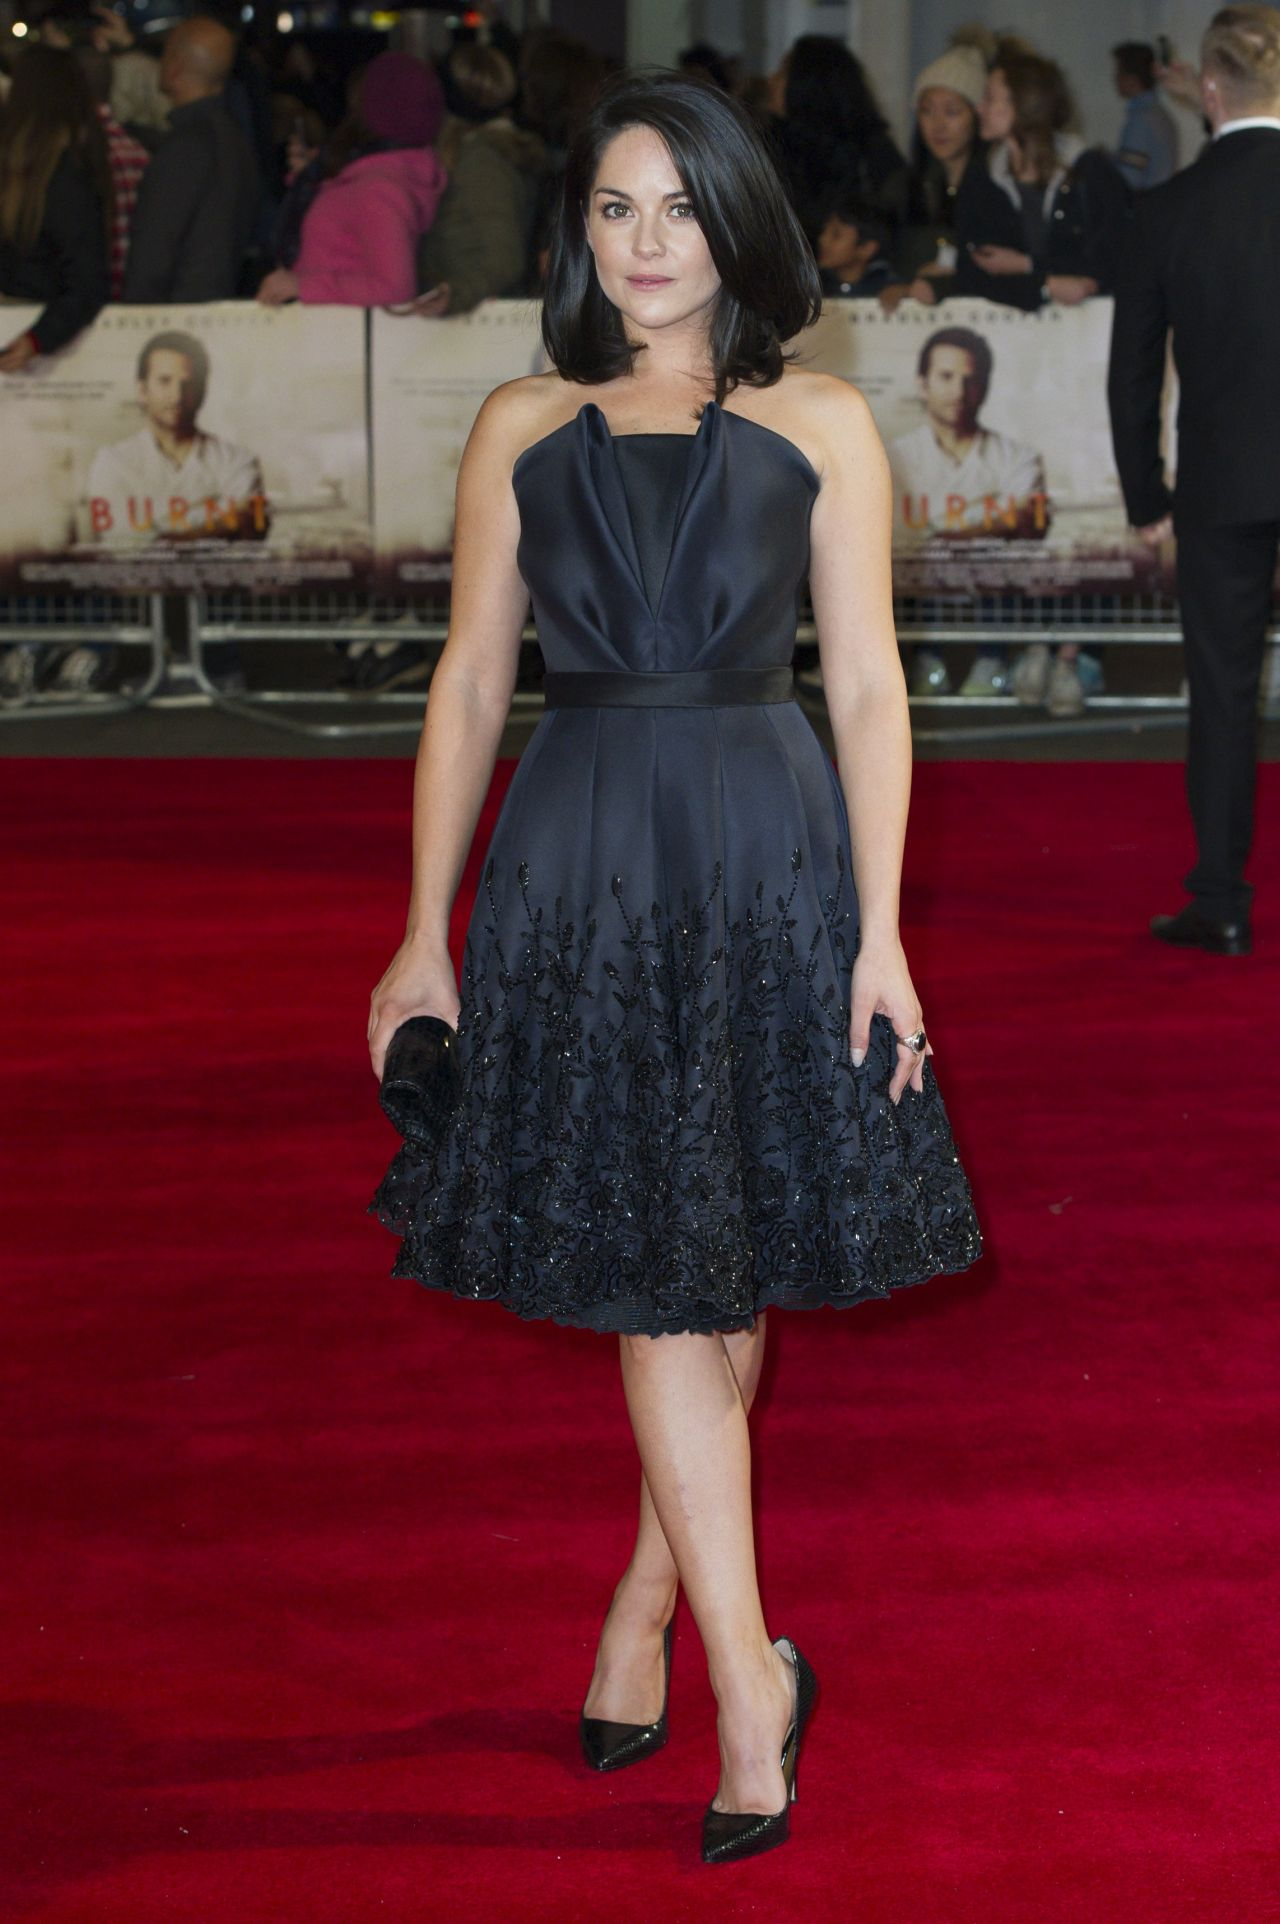 Sarah Greene Burnt Premiere In London